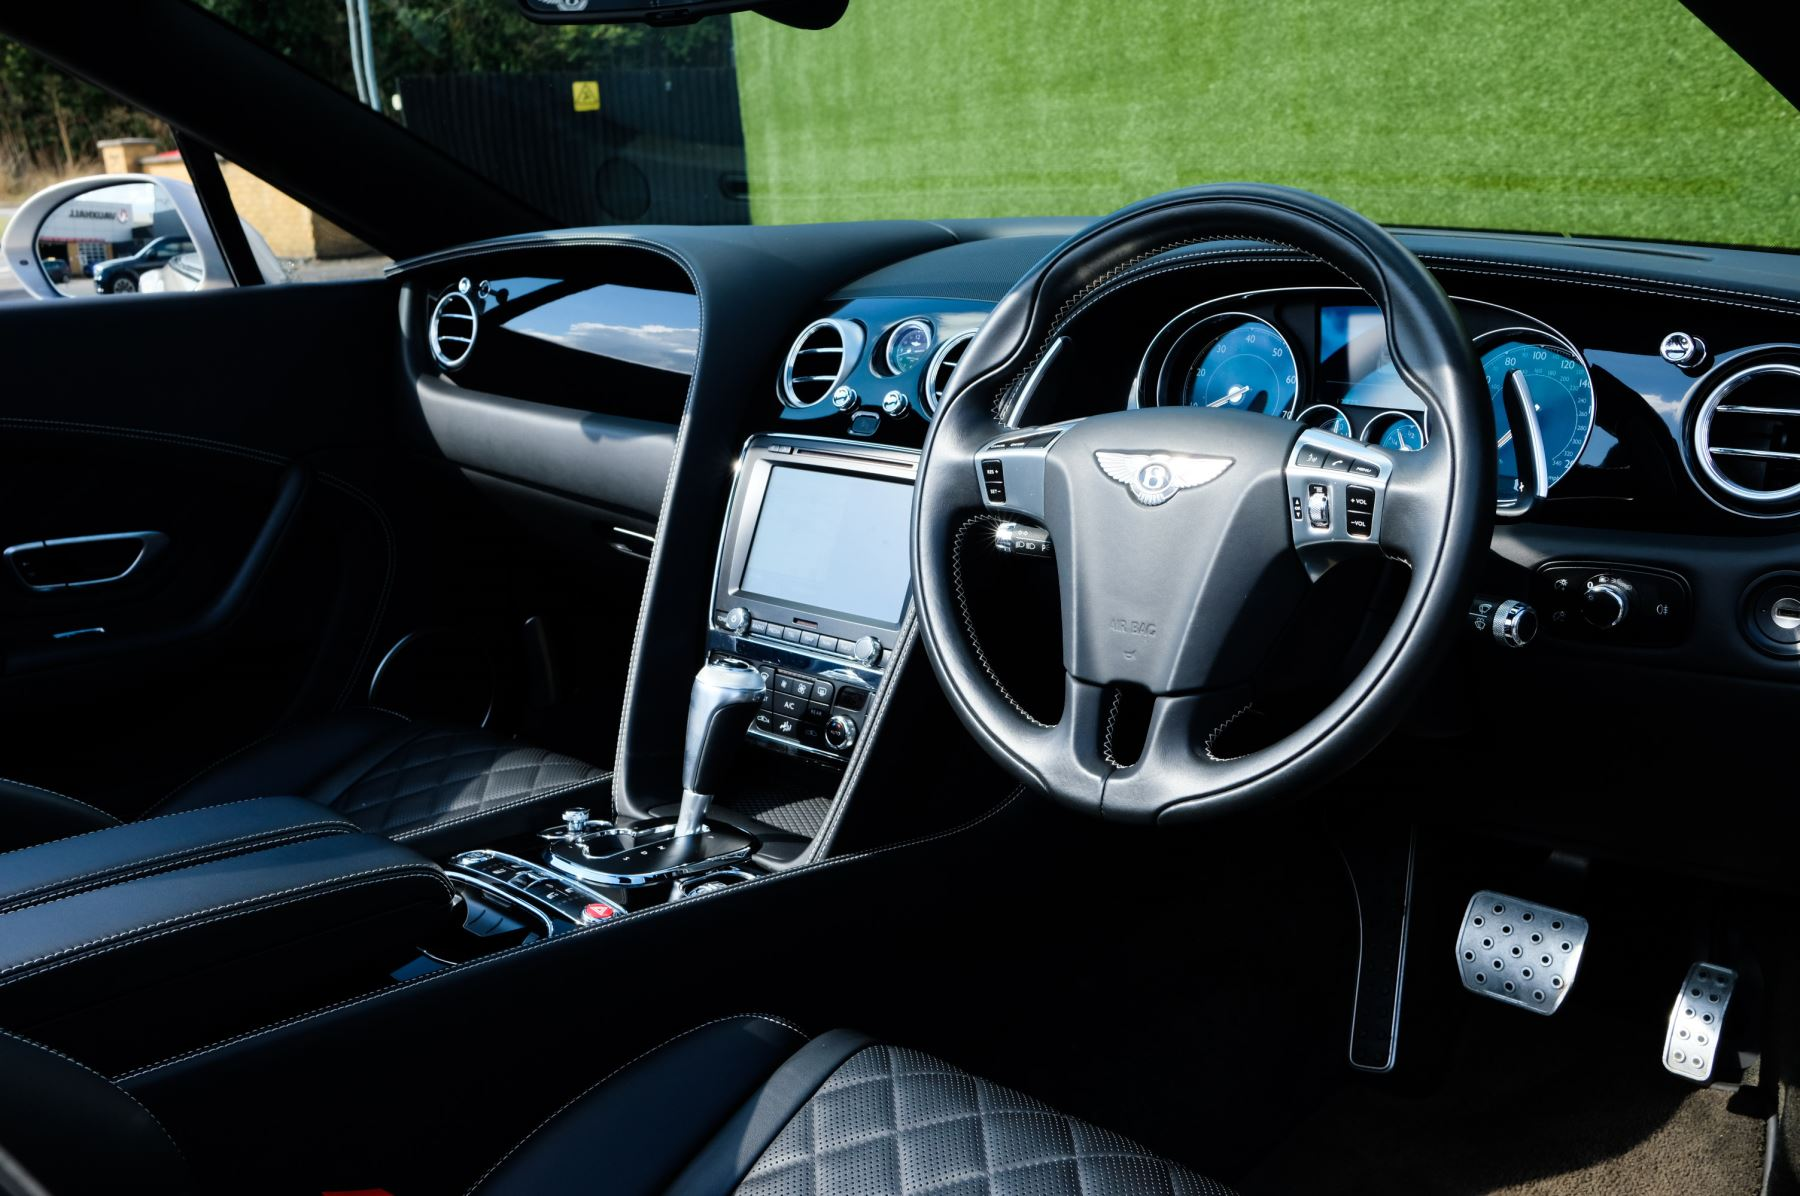 Bentley Continental GTC 4.0 V8 S Mulliner Driving Spec - Ventilated Front Seats with Massage Function image 12